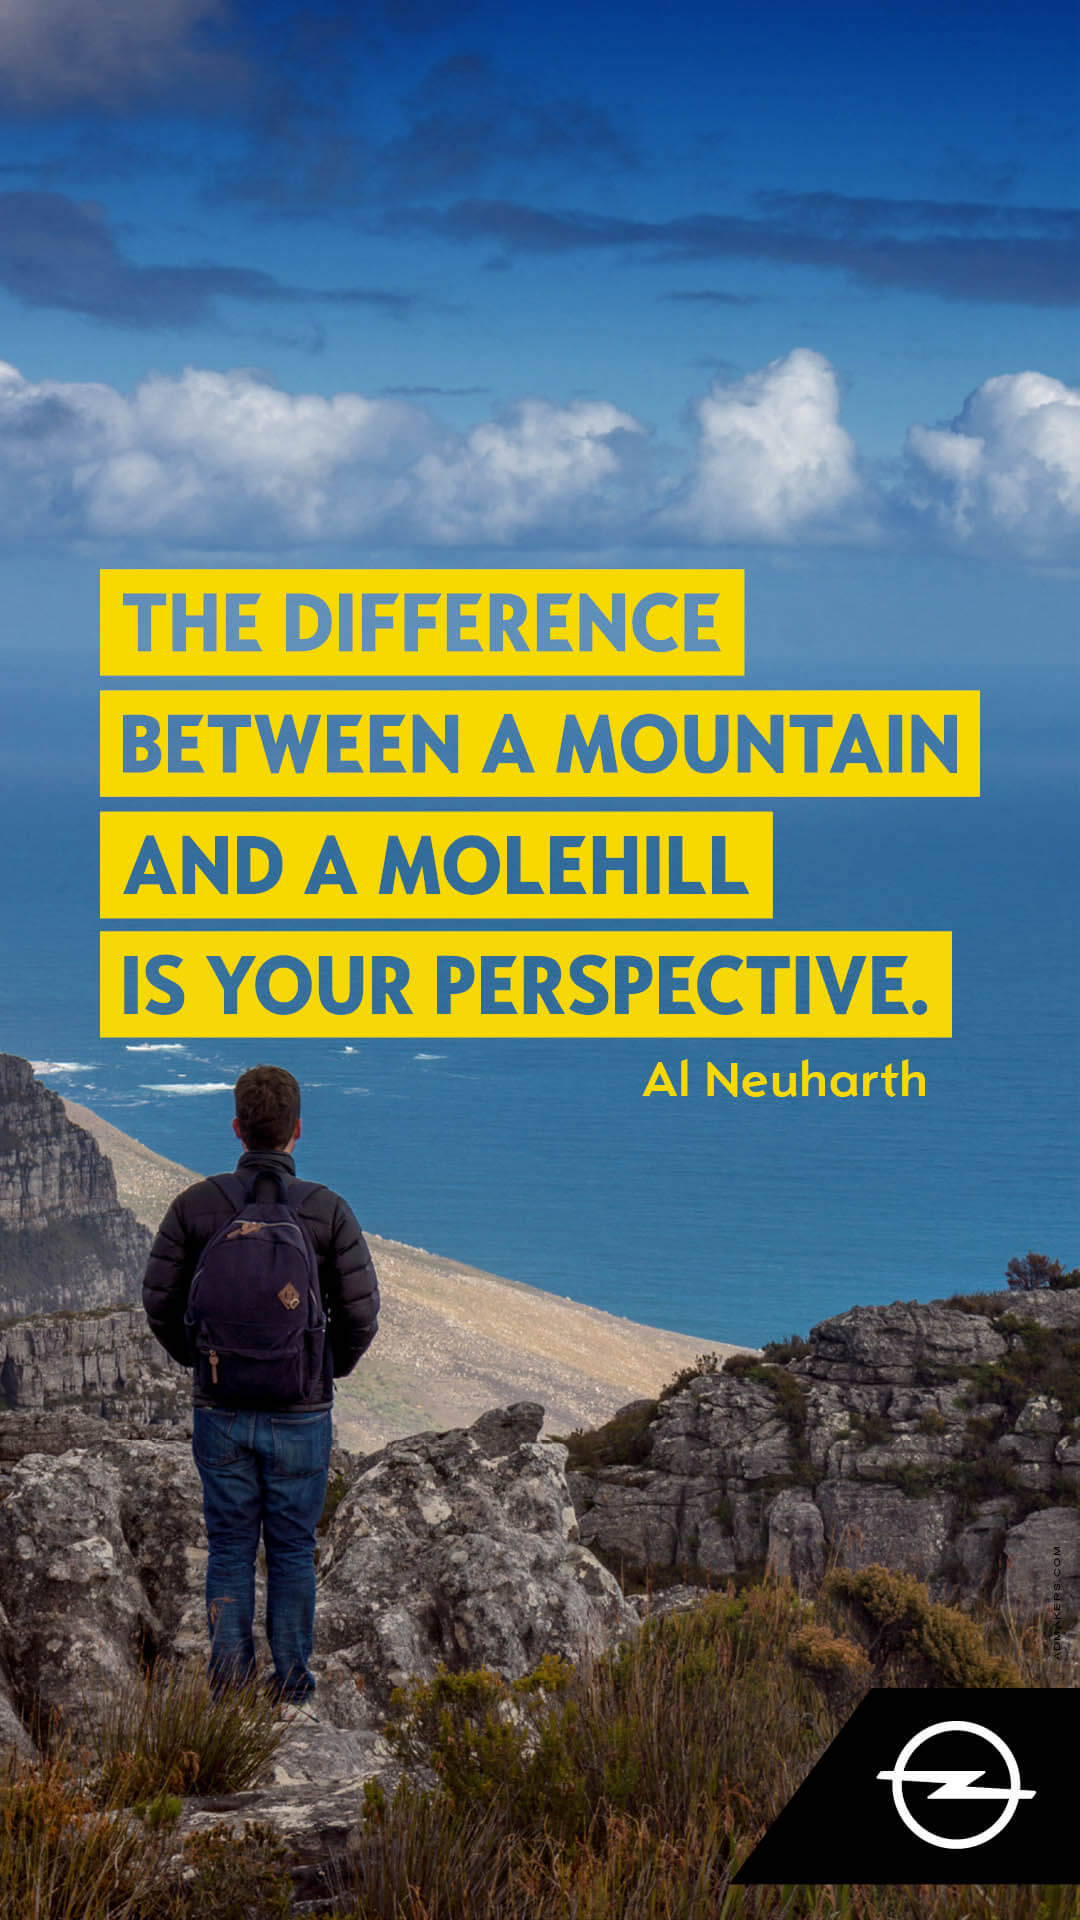 The difference between a mountain and a molehill is your perspective.